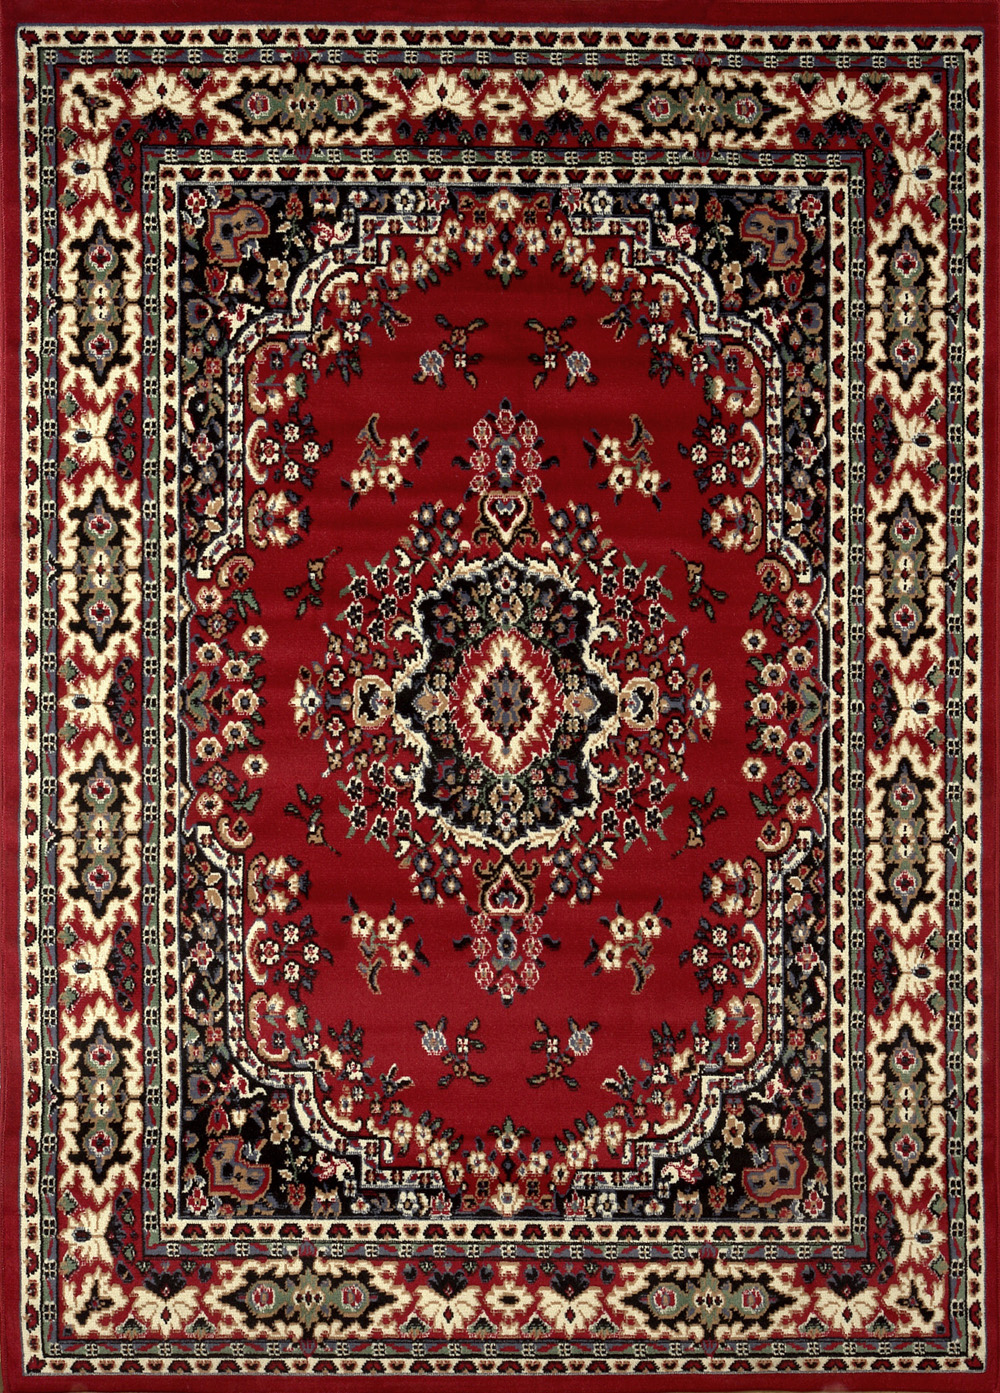 Persian area rugs traditional oriental medallion area rug persian style carpet runner mat  allsizes WUAXJMW